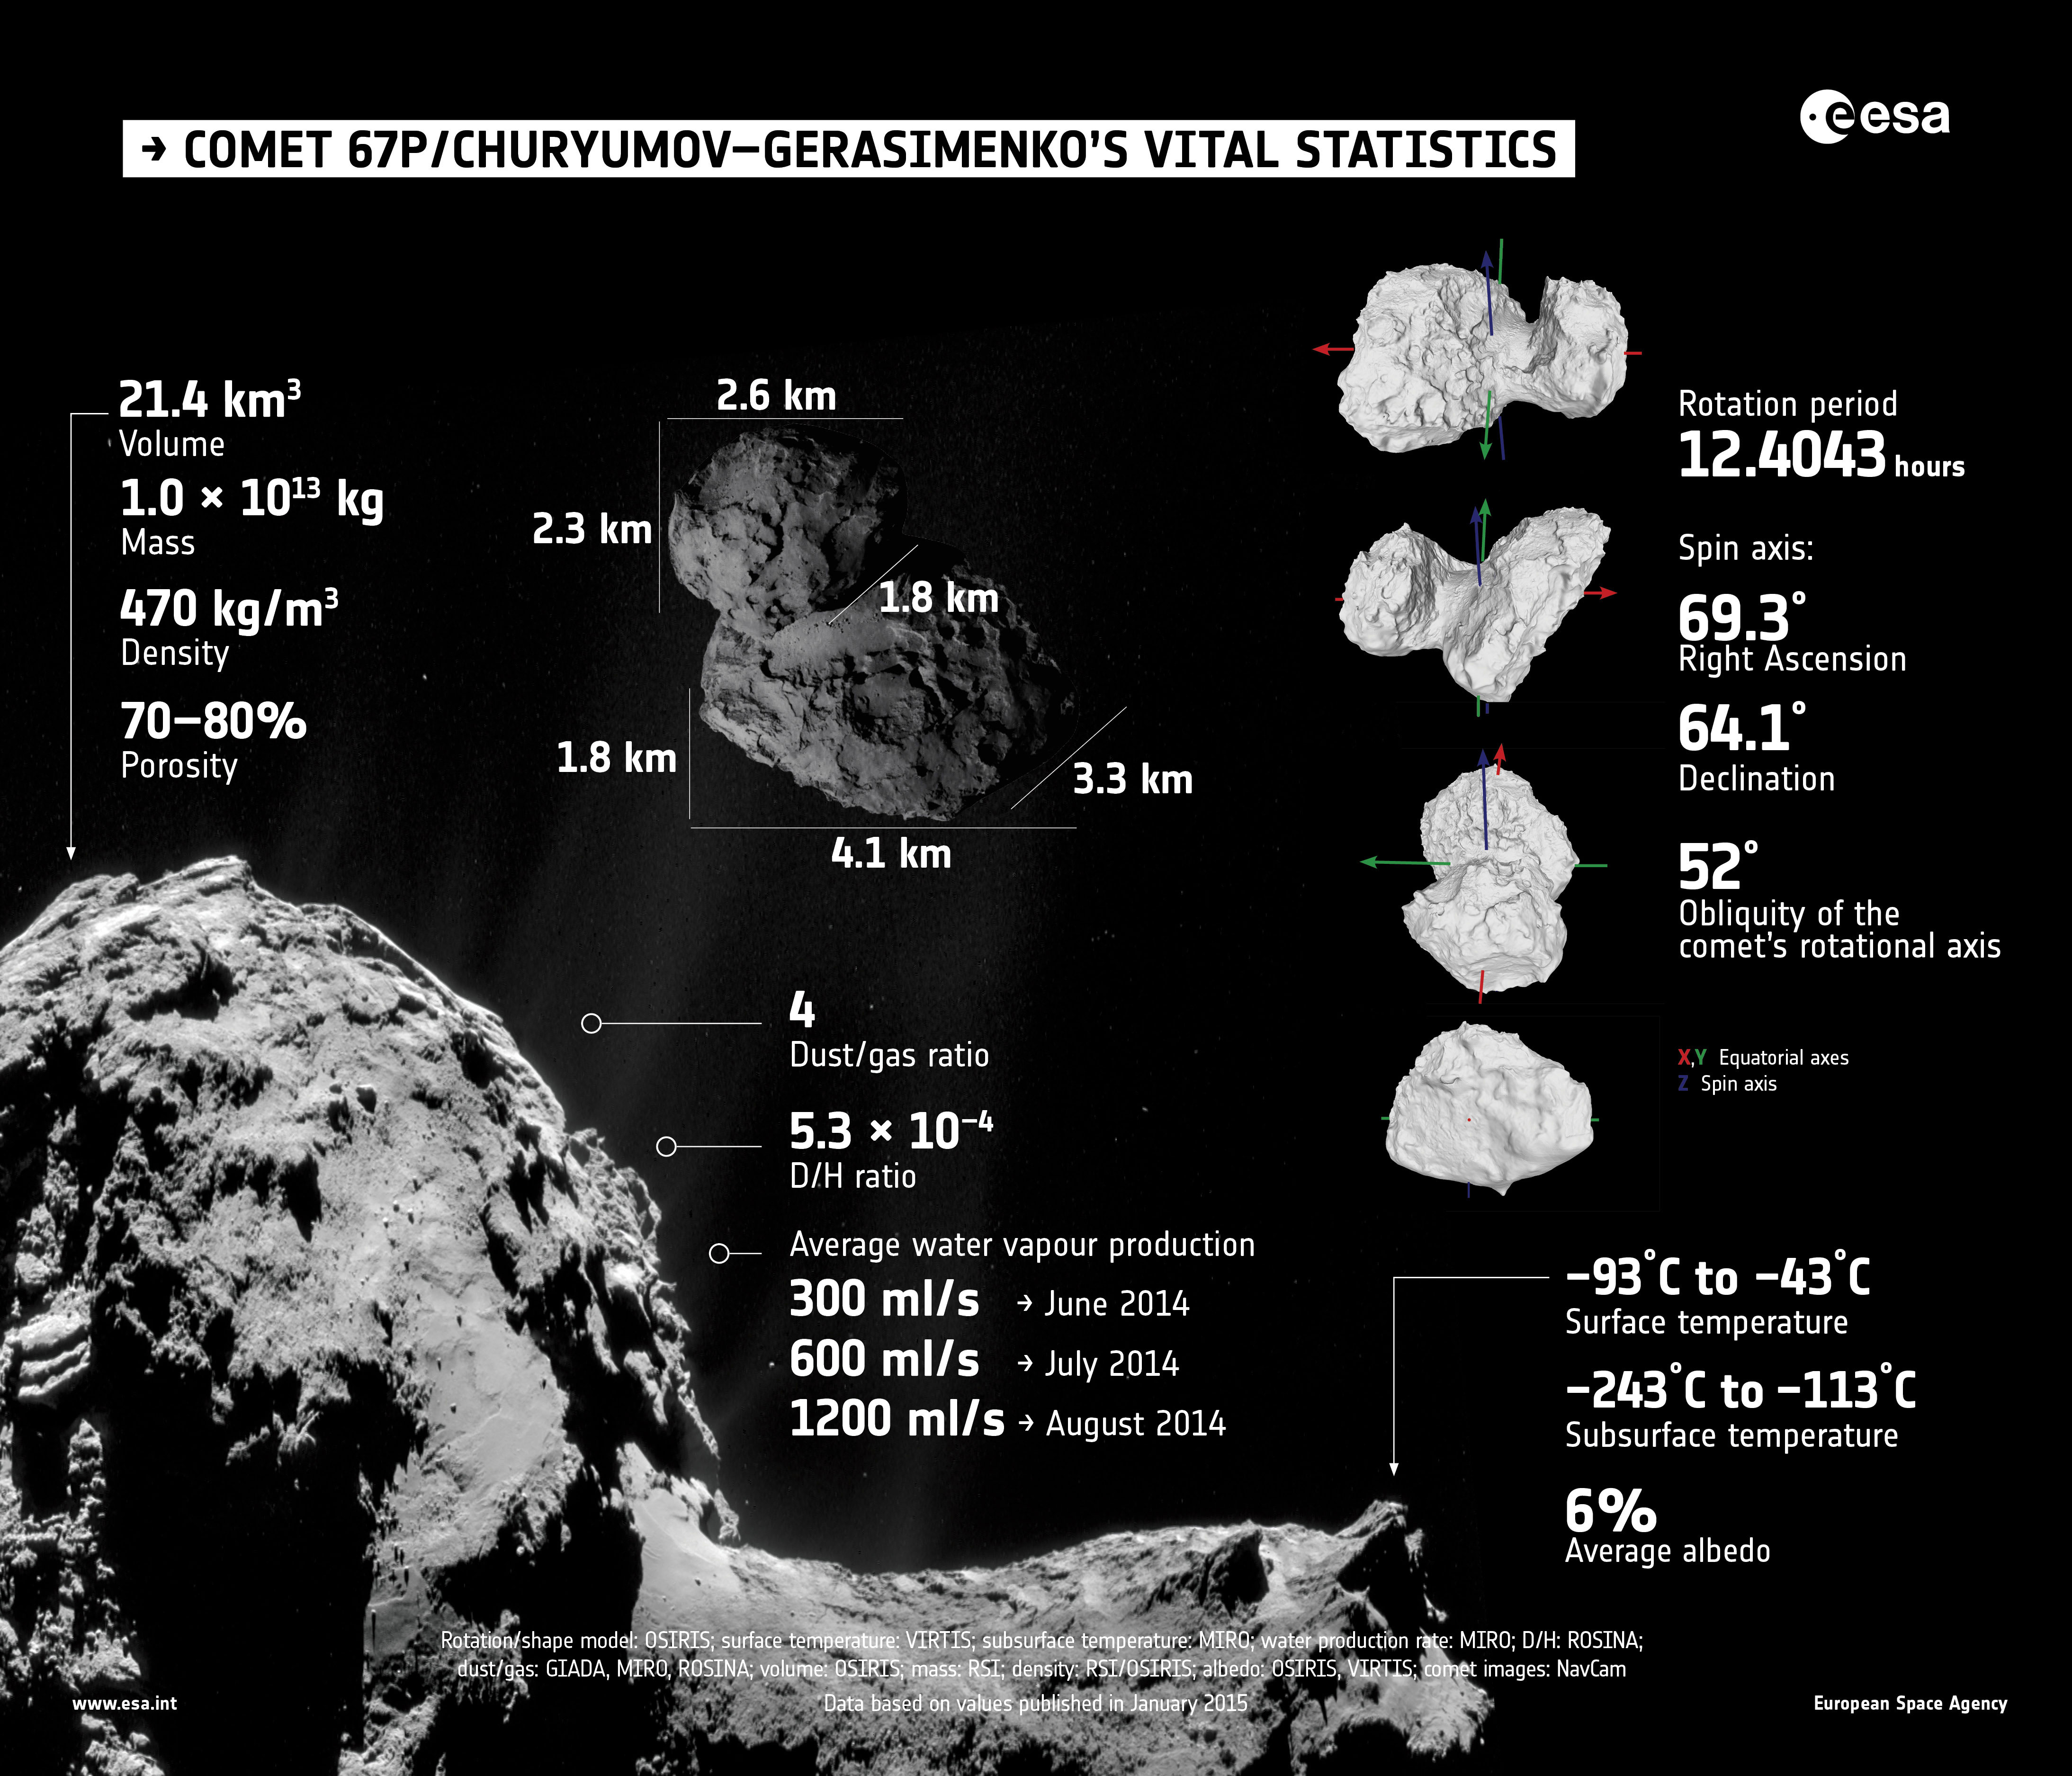 Summary of properties of Comet 67P/Churyumov–Gerasimenko, as determined by Rosetta's instruments during the first few months of its comet encounter. Credit: ESA